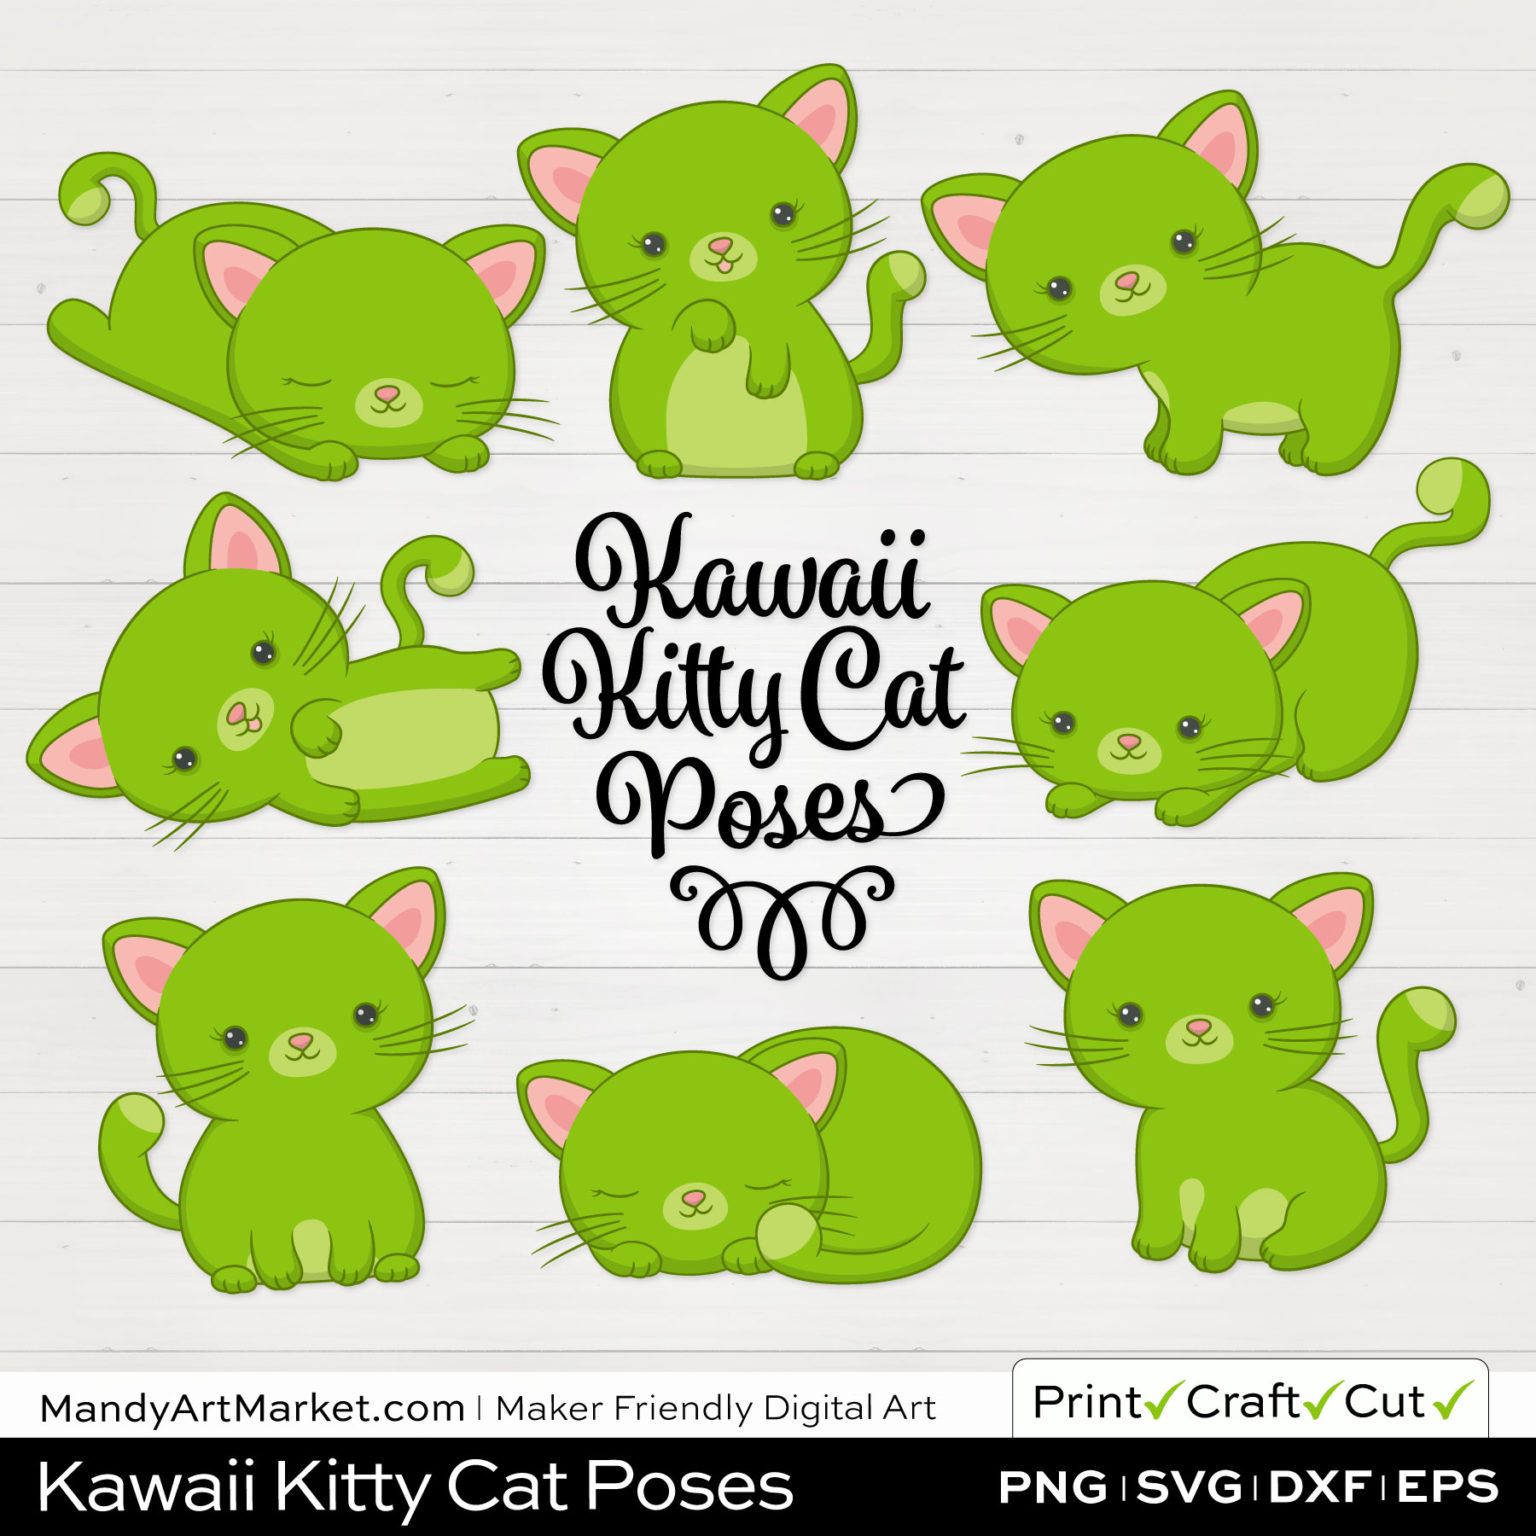 Lime Green Kawaii Kitty Cat Poses Clipart on White Background